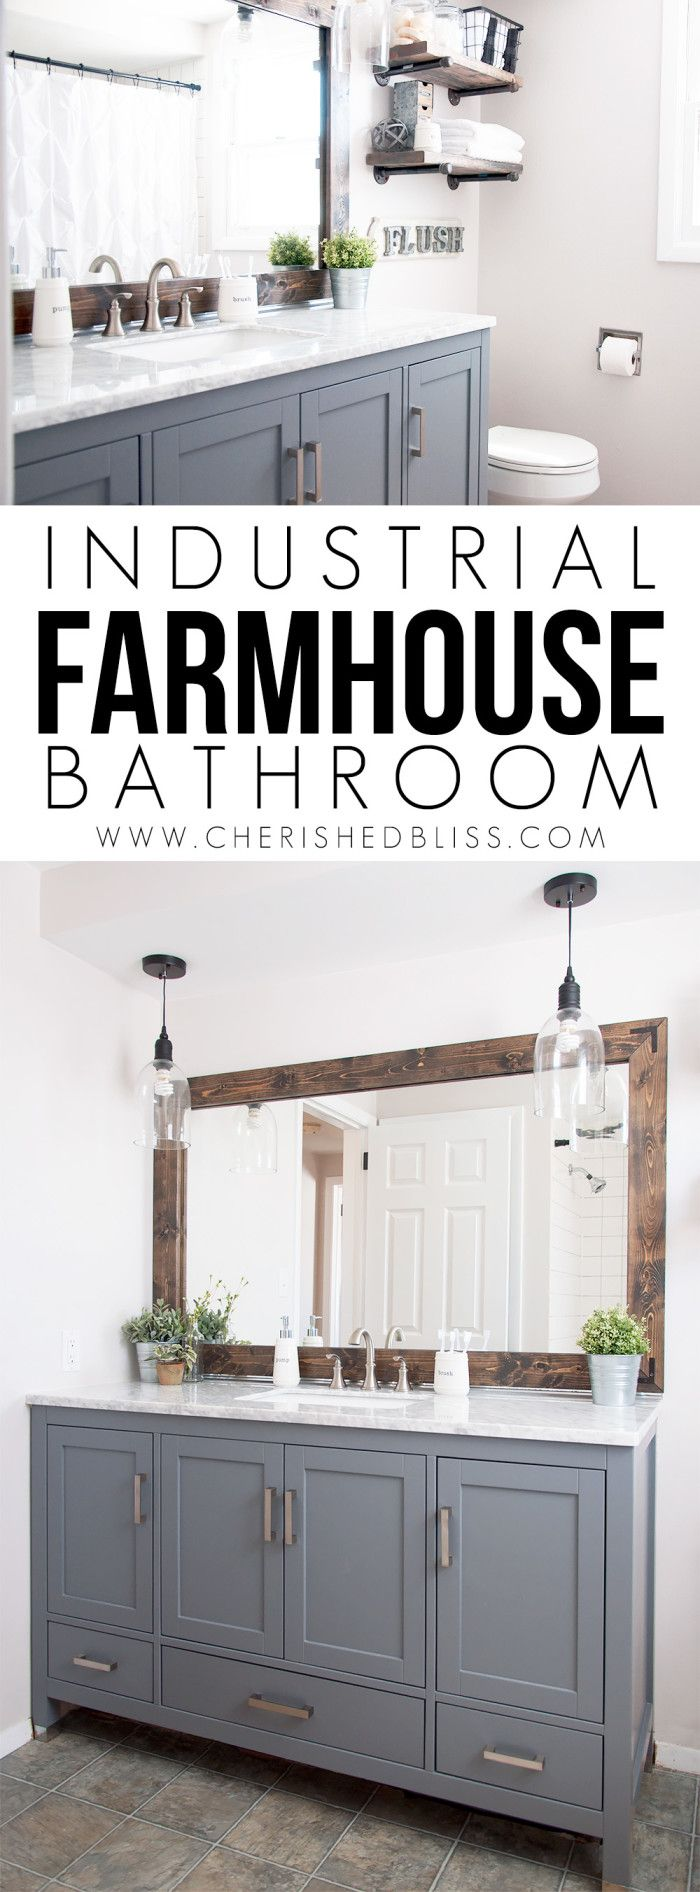 industrial farmhouse bathroom reveal - Bathroom Remodel Mirrors